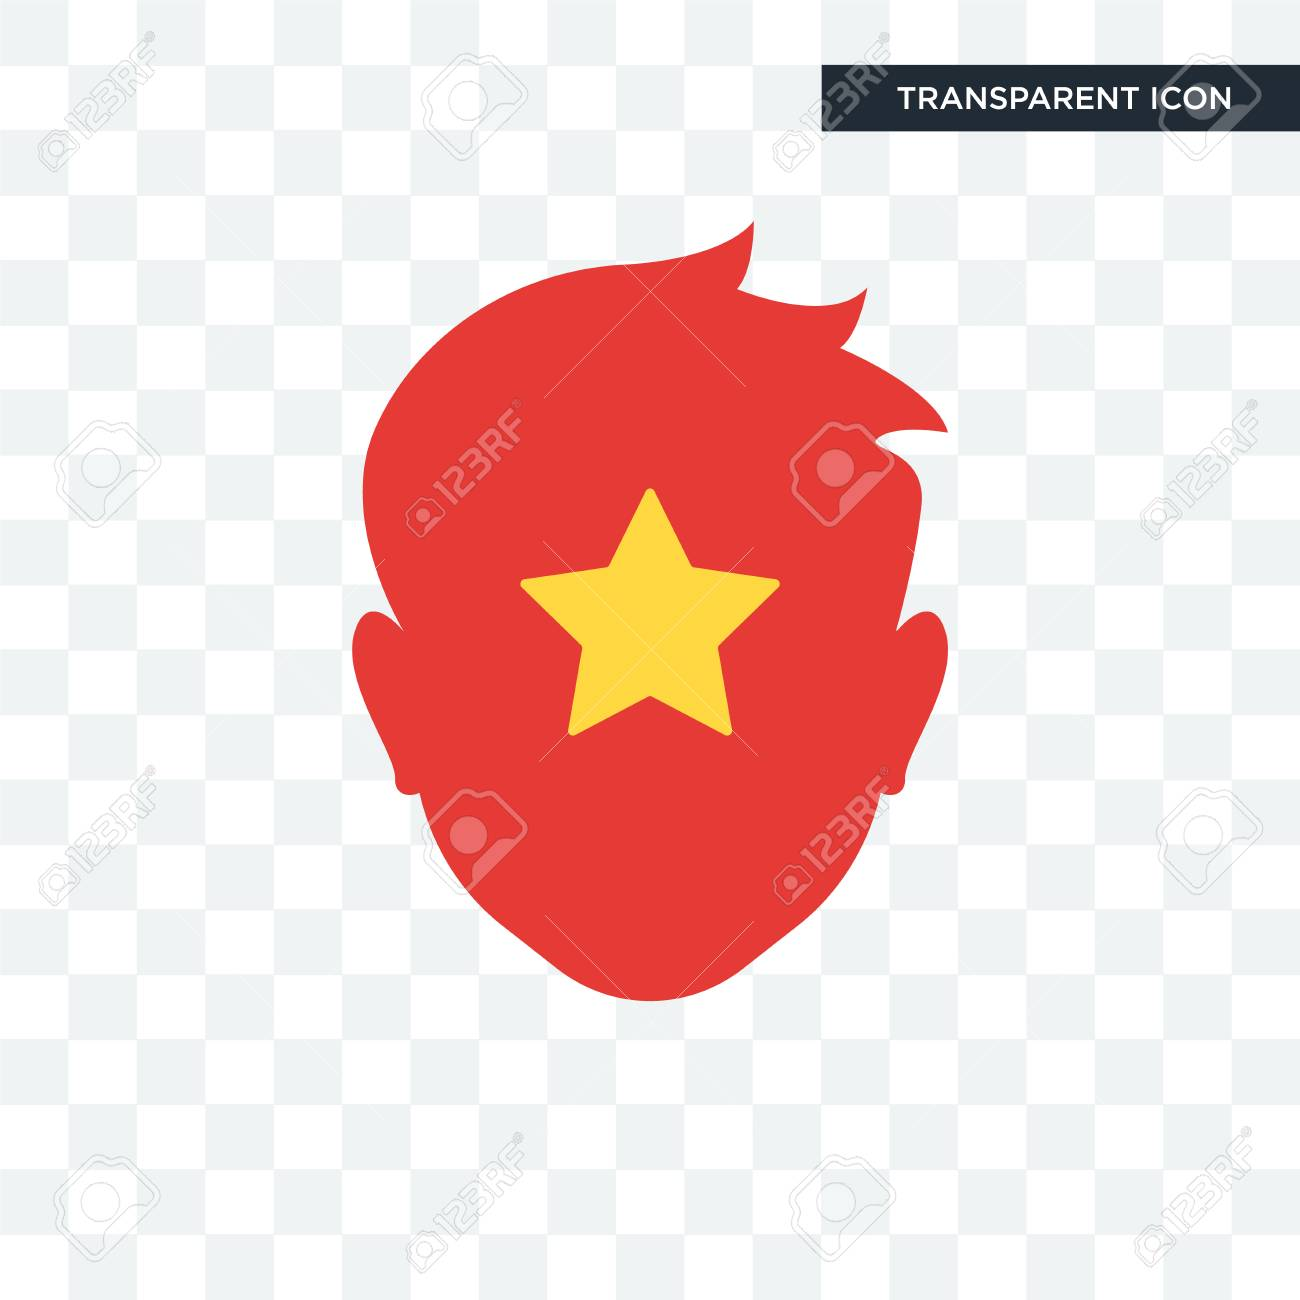 Vietnam Icon Isolated On Transparent Background Royalty Free Cliparts Vectors And Stock Illustration Image 108518214